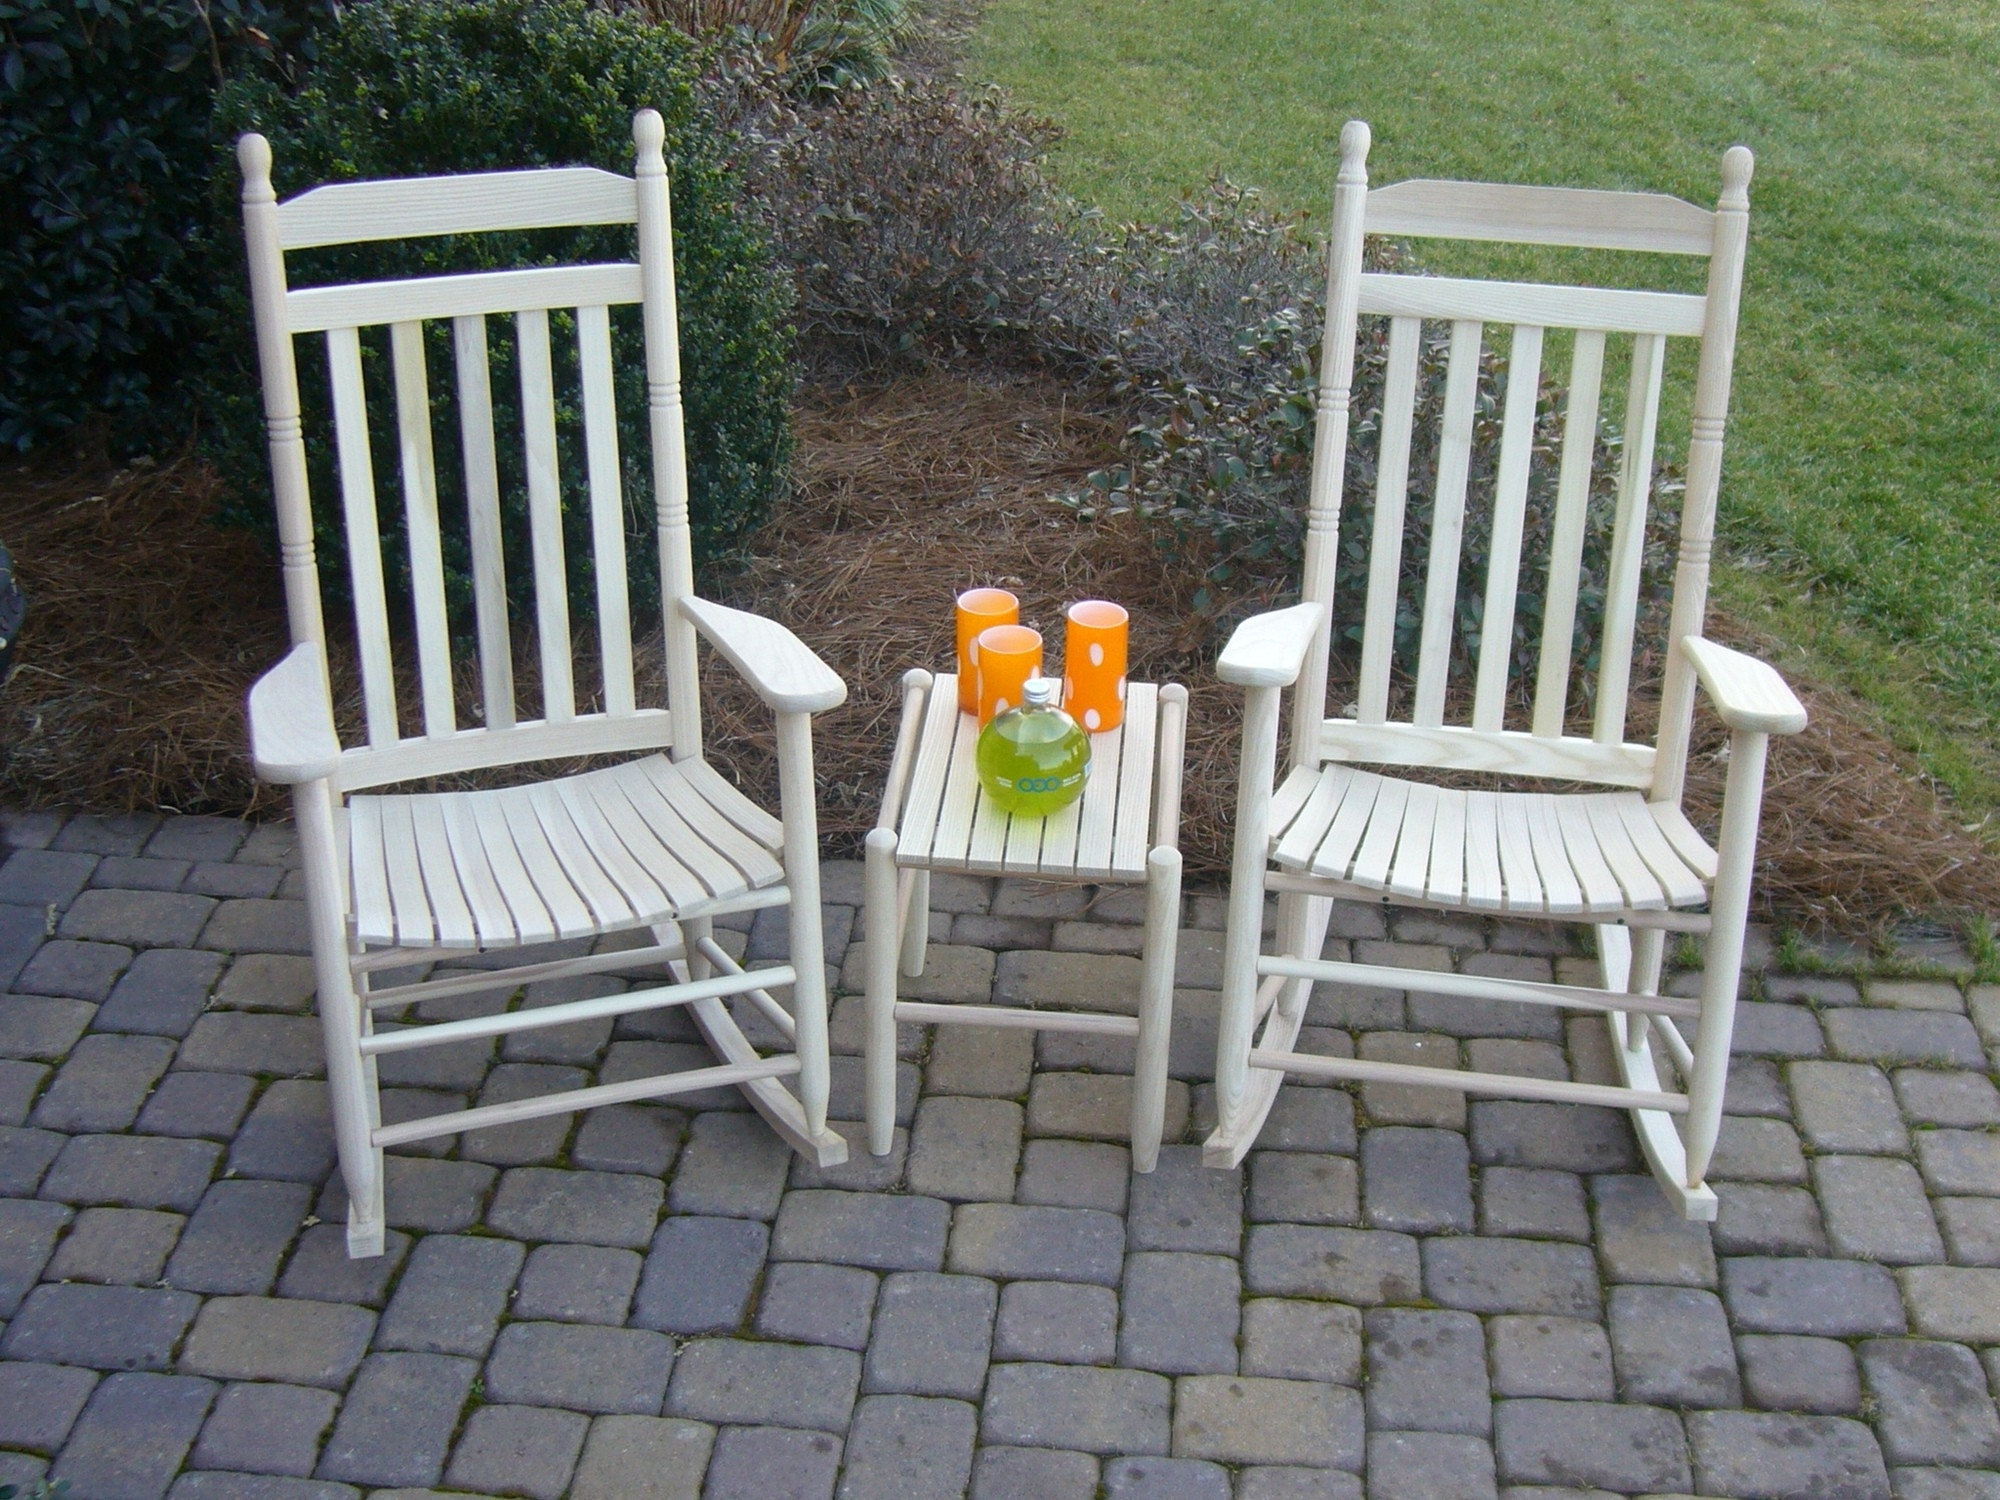 Preferred Outdoor Rocking Chairs With Table Throughout Extraordinary Porch Table And Chairs Inspirational Furniture Outdoor (View 13 of 20)